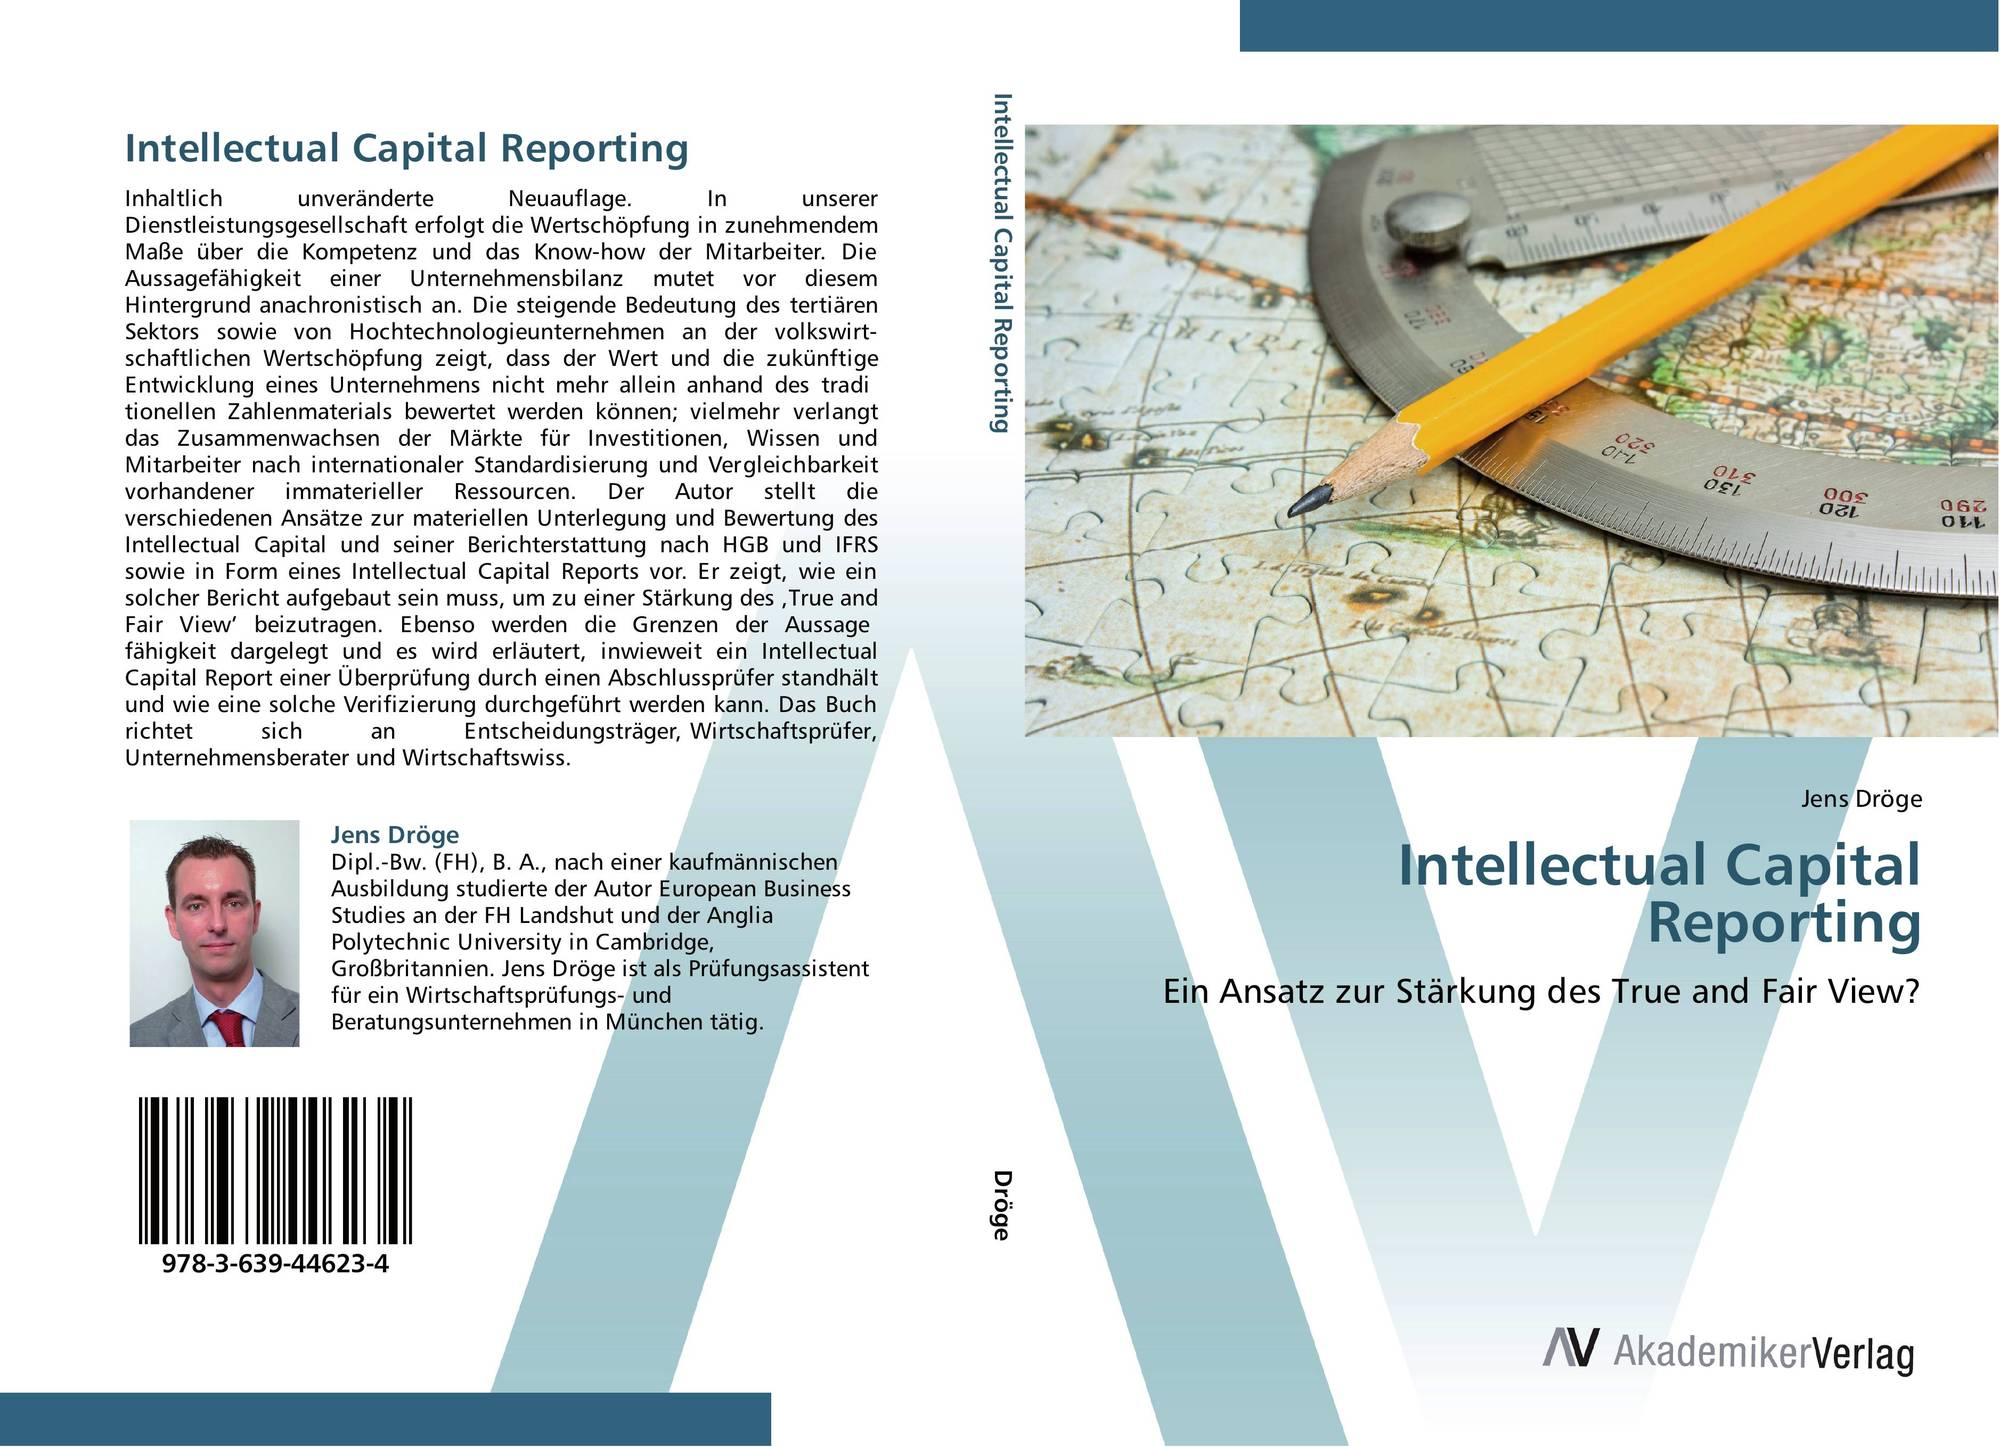 importance of intellectual capital in the modern economy Popkova,eg, yurev,v, stepicheva,o, denisov,n intellectual capital in the modern economy 55 researchers to remain in their countries in our country for example there has been a great.